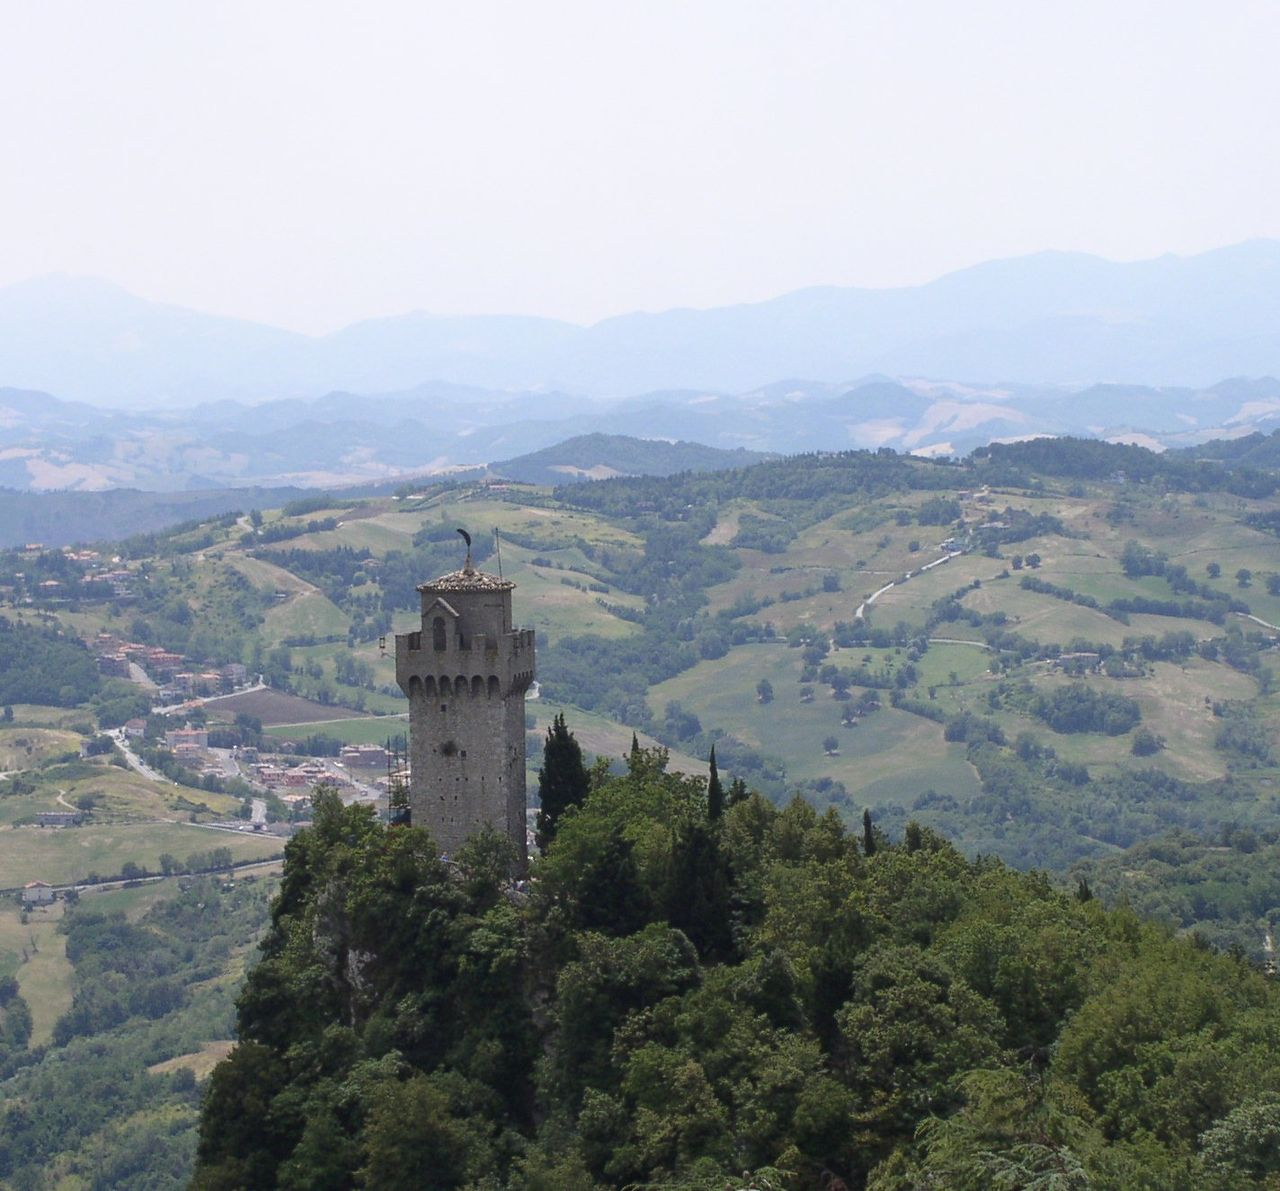 Montale, the Third Tower of San Marino – from http://commons.wikimedia.org/wiki/User:Alaexis, under Creative Commons CC BY-SA 2.5